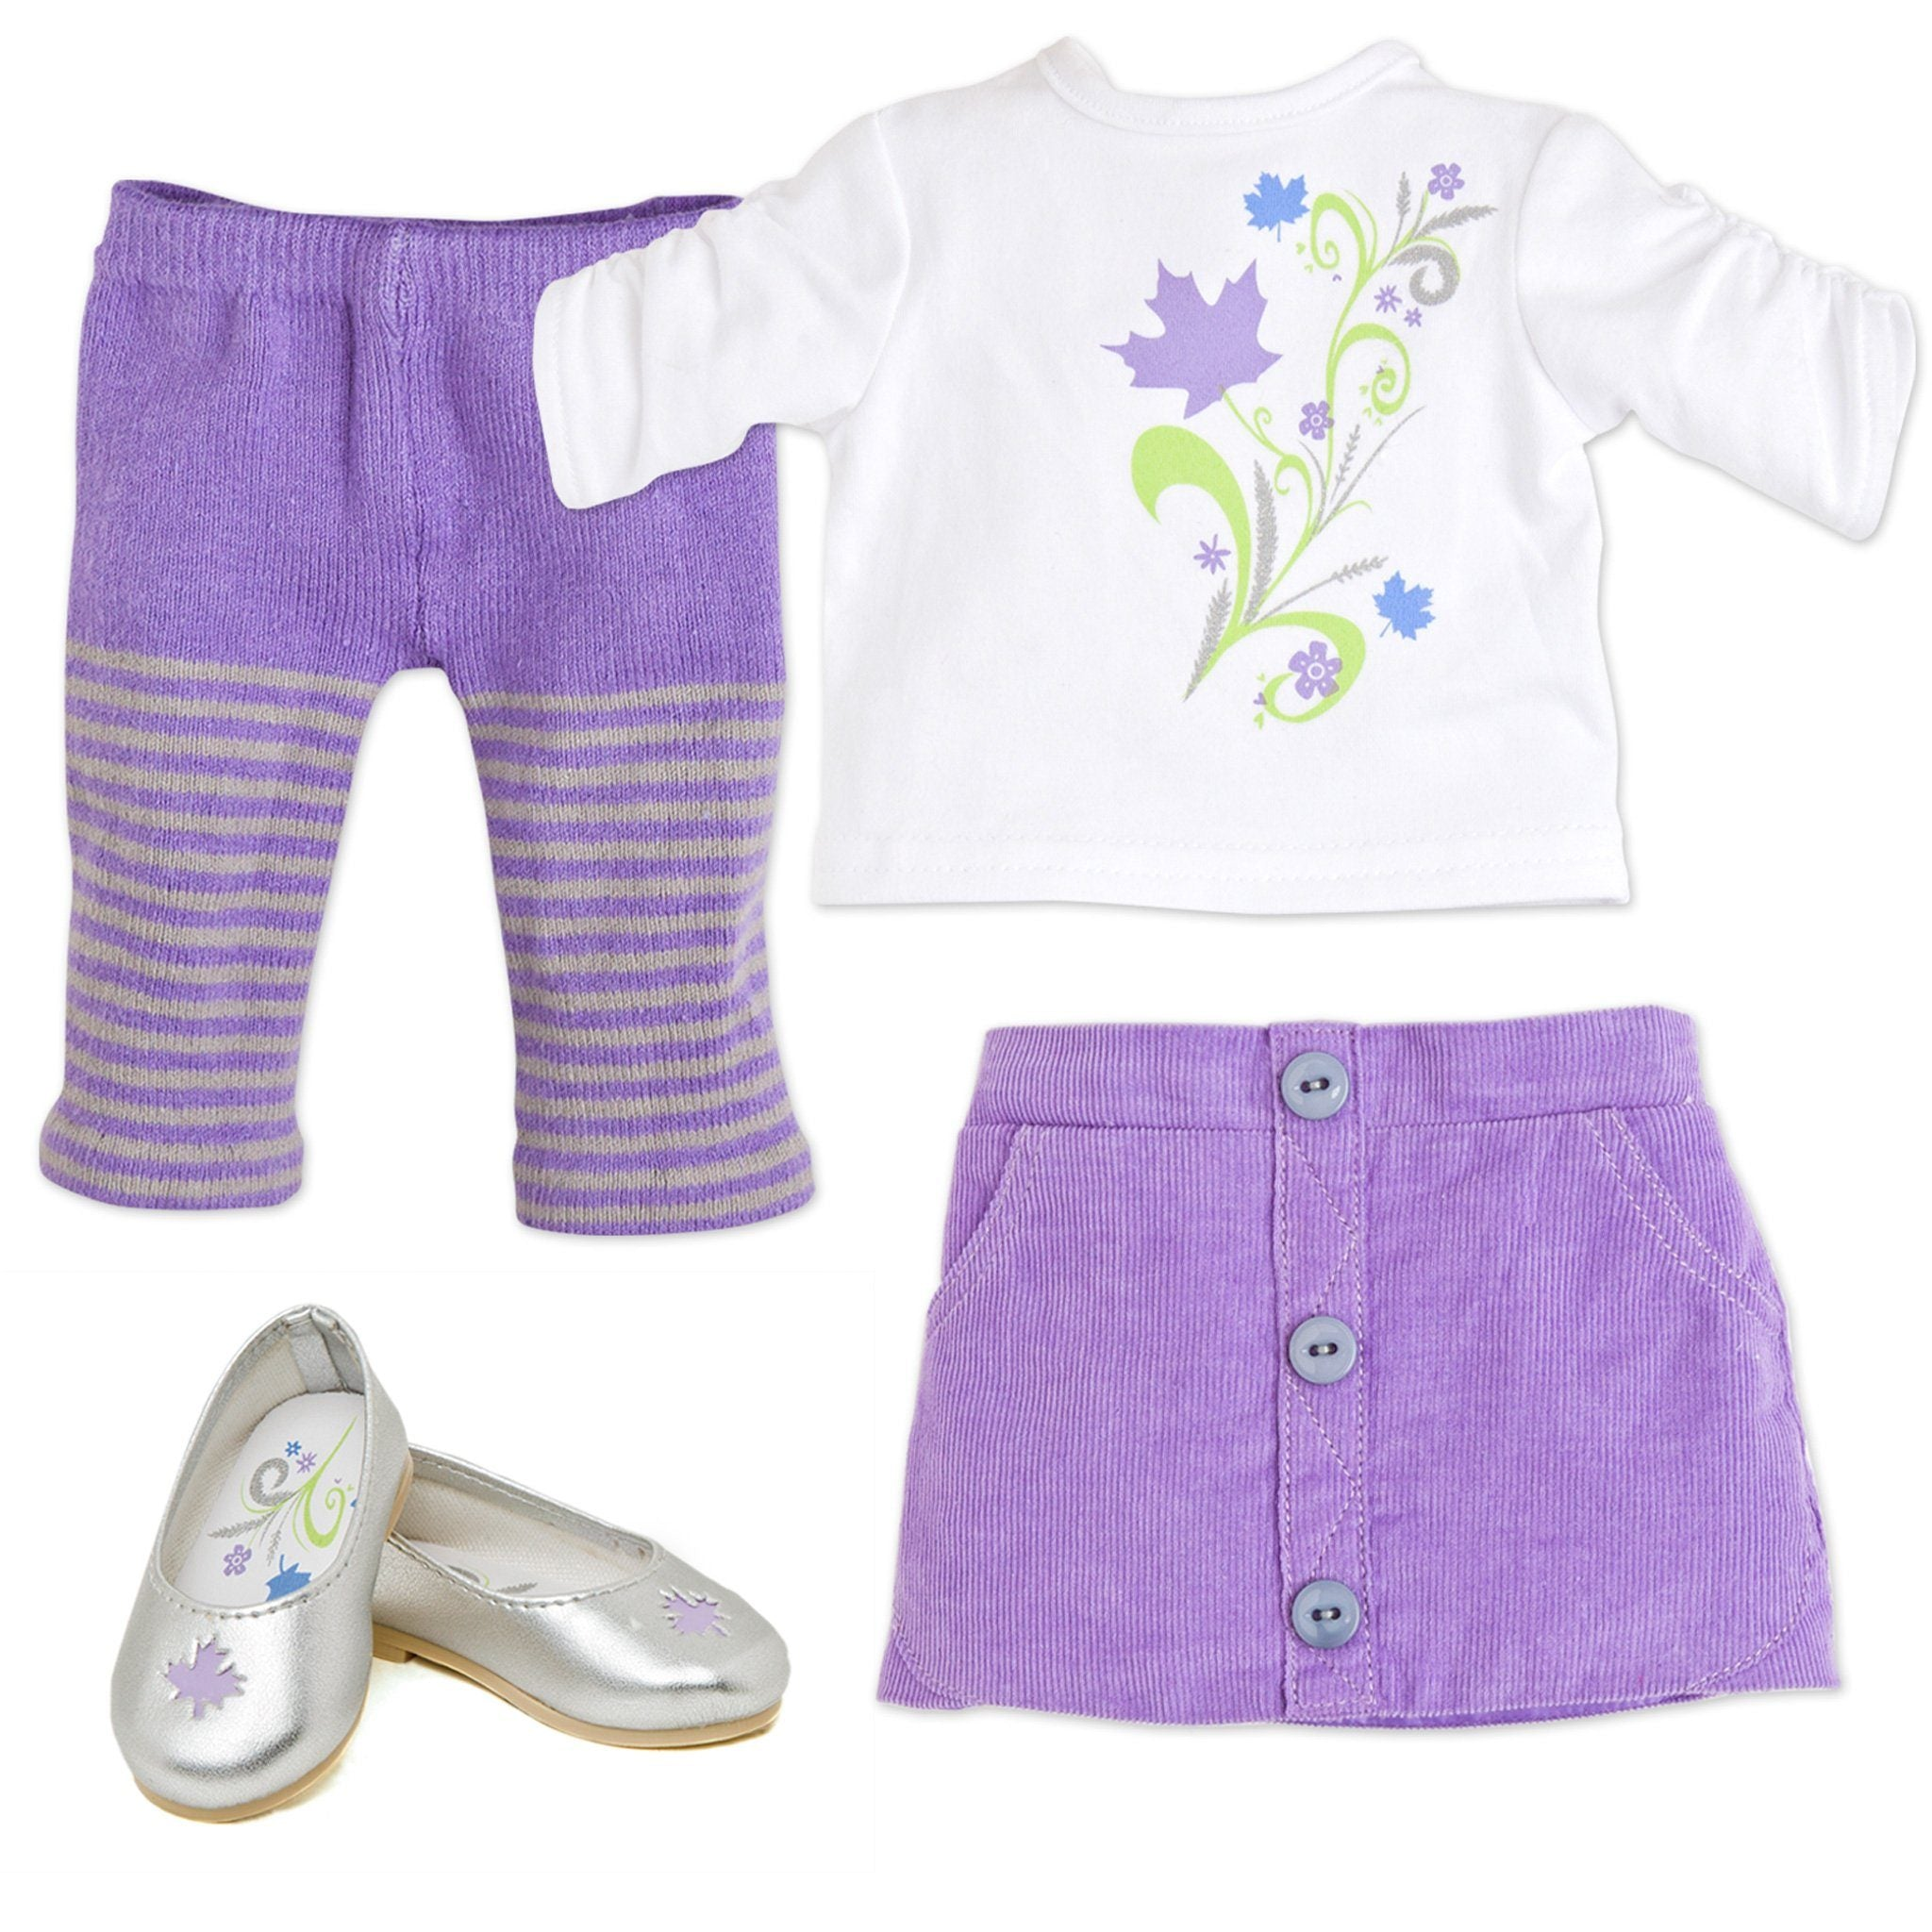 Maplelea Friend 18 inch doll starter outfit purple corduroy skirt, white ruched sleeve shirt with leaf graphic, purple striped tights, silver ballet flats with maple leaf cutout. Fits all 18 inch dolls.